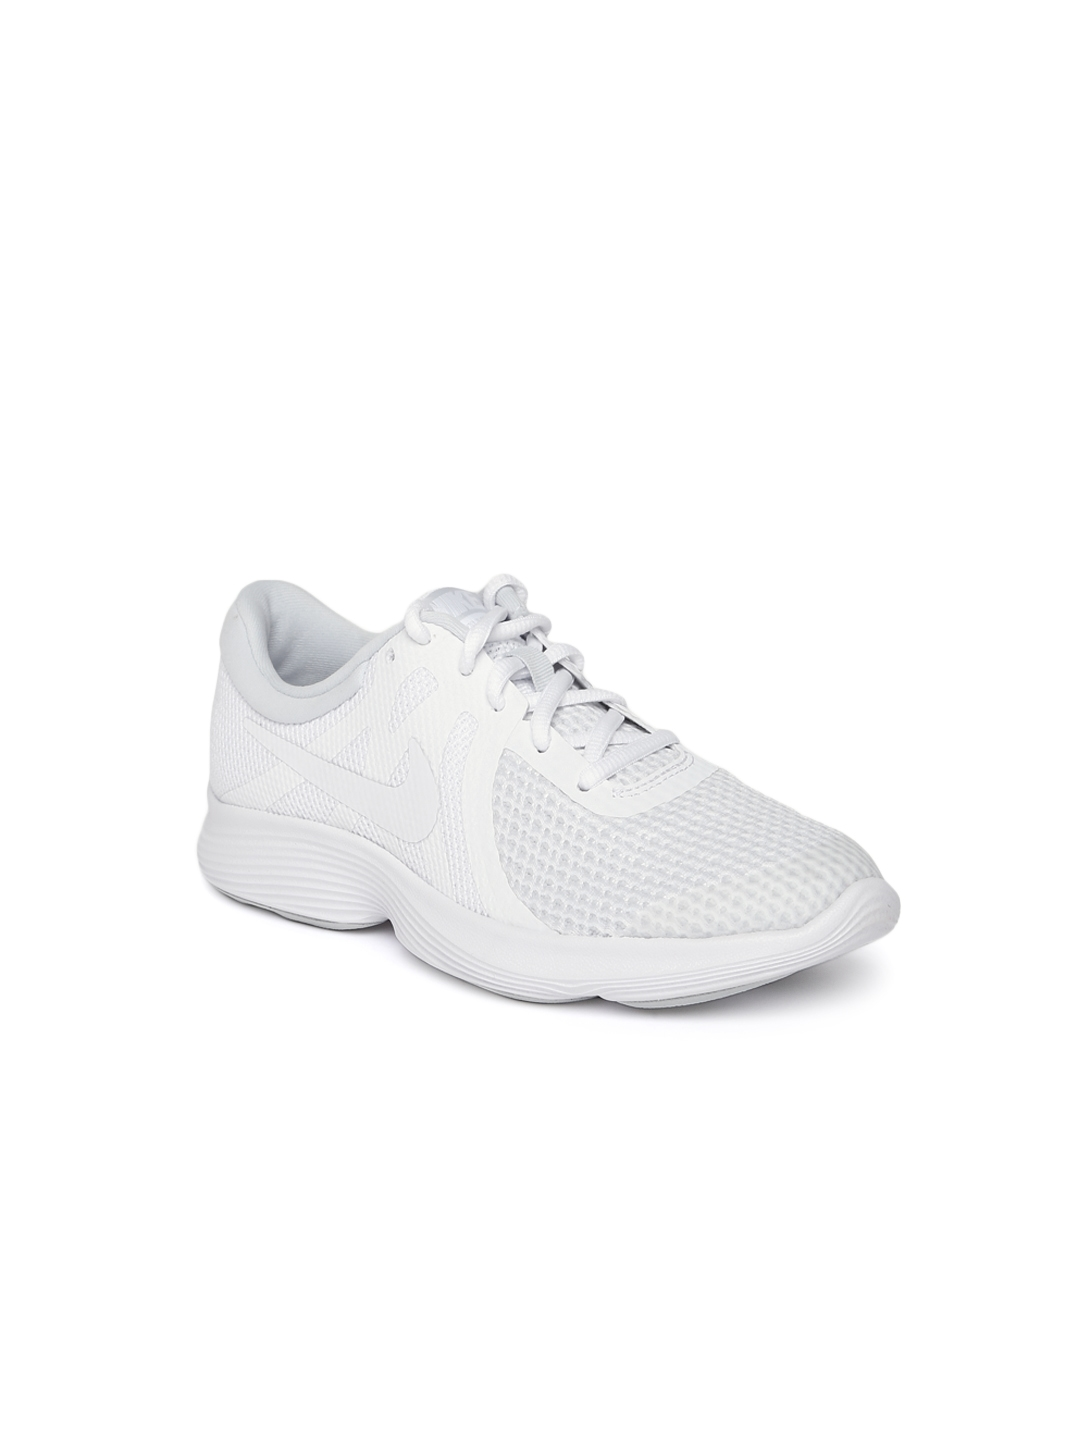 99c073354c9a Buy Nike Boys White REVOLUTION 4 (GS) Running Shoes - Sports Shoes ...